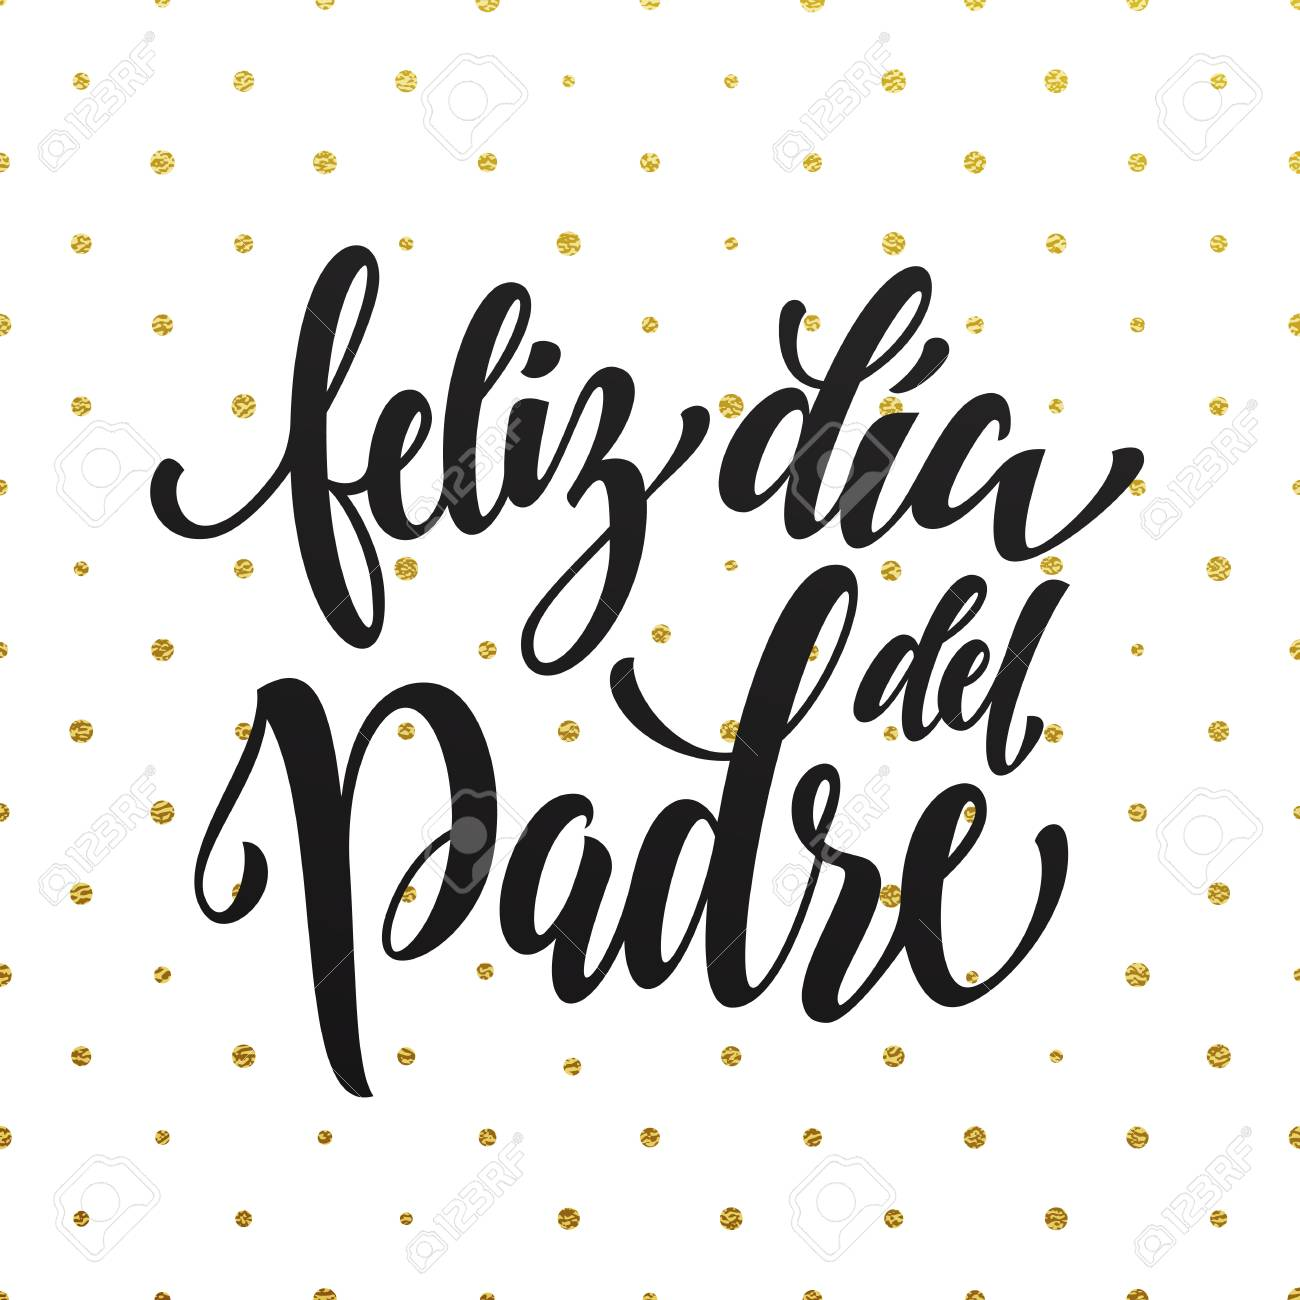 Feliz dia del padre spanish father day greeting card text fathers spanish father day greeting card text fathers day gold glitter m4hsunfo